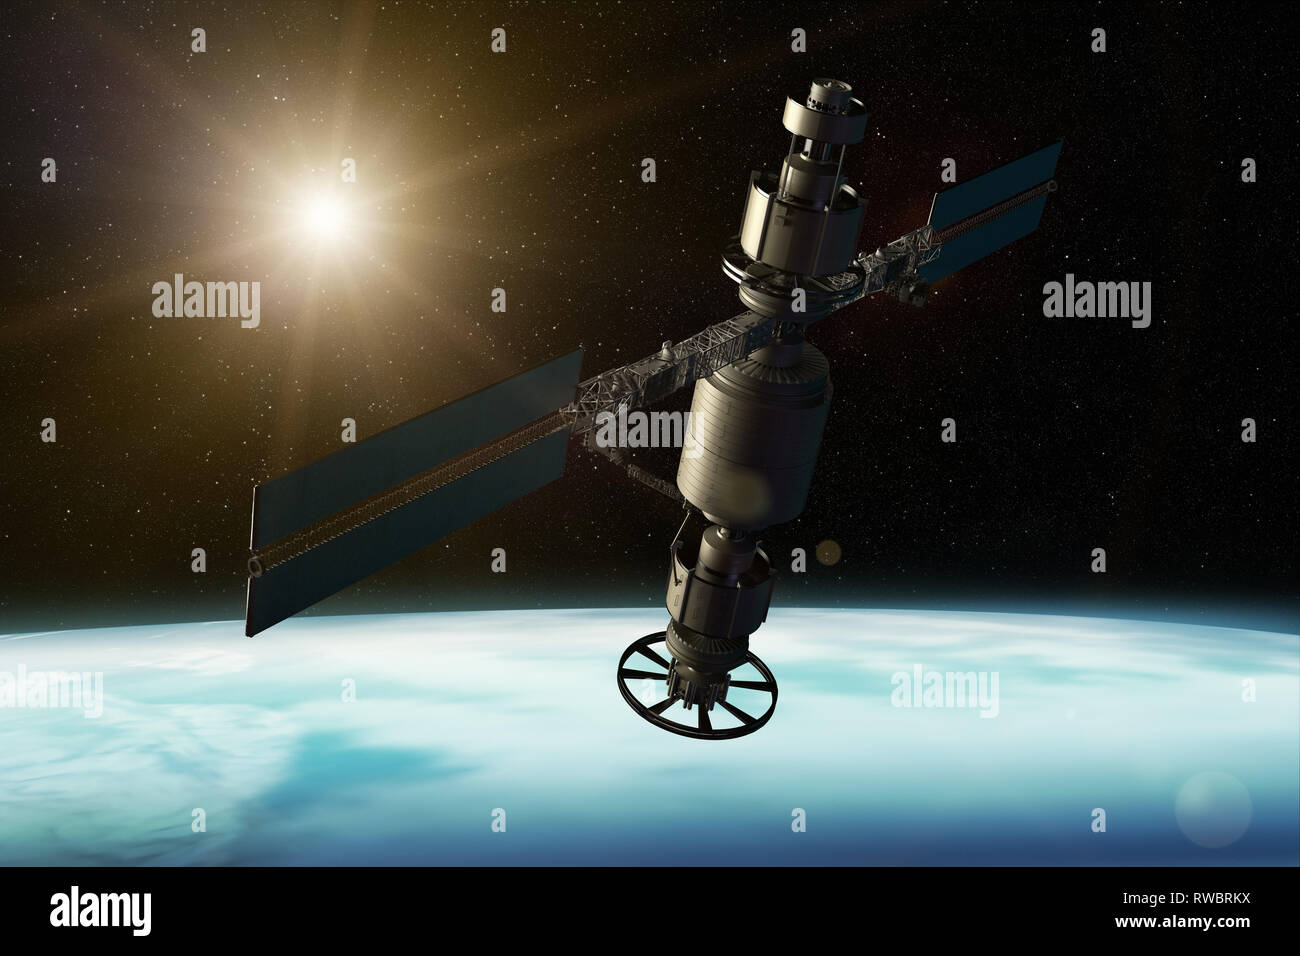 3D rendering of a satellite orbiting the earth - Stock Image